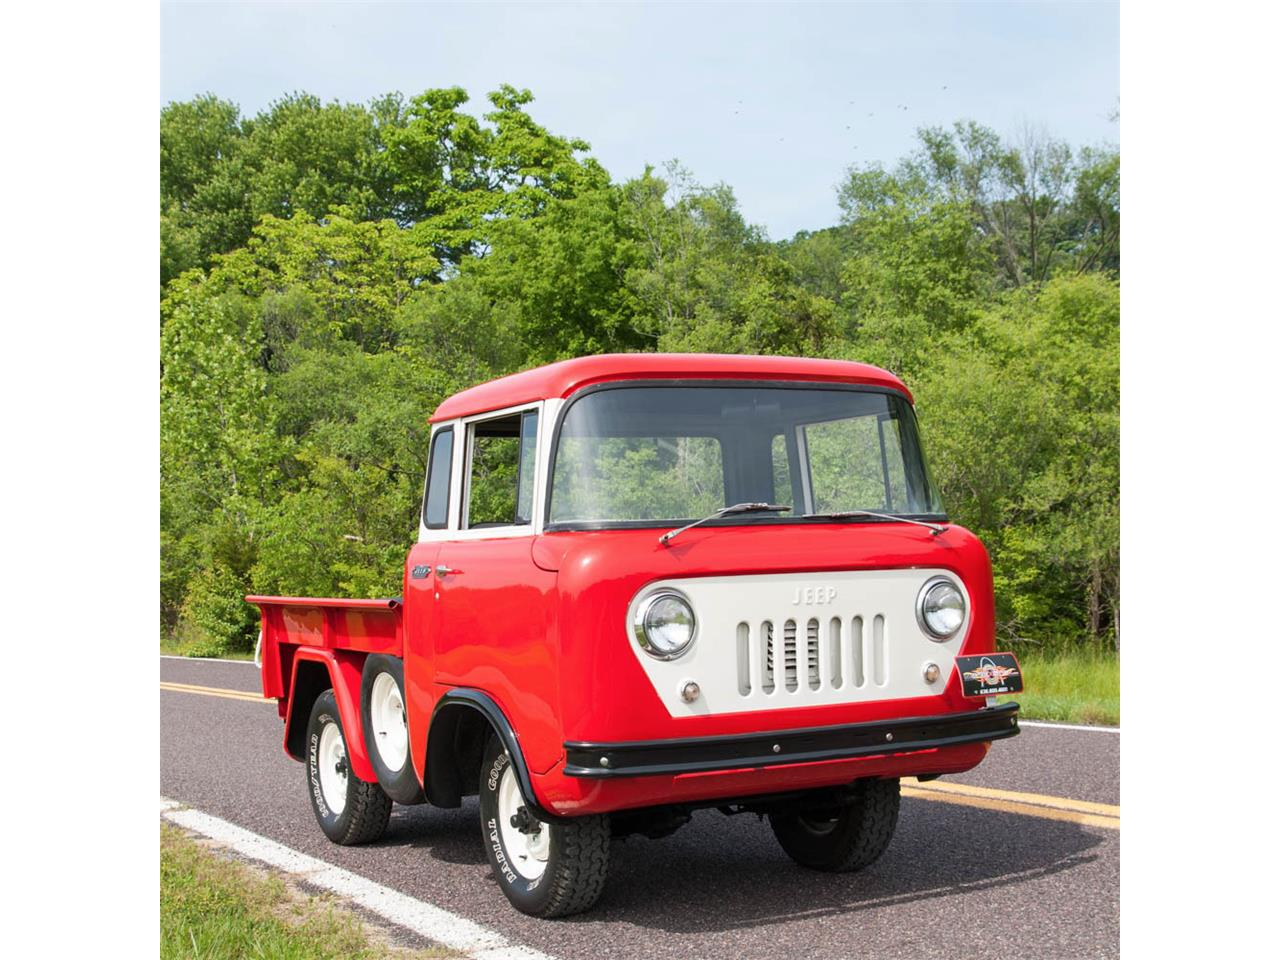 1958 Willys Jeep Fc150 For Sale Classiccars Com Cc 858985